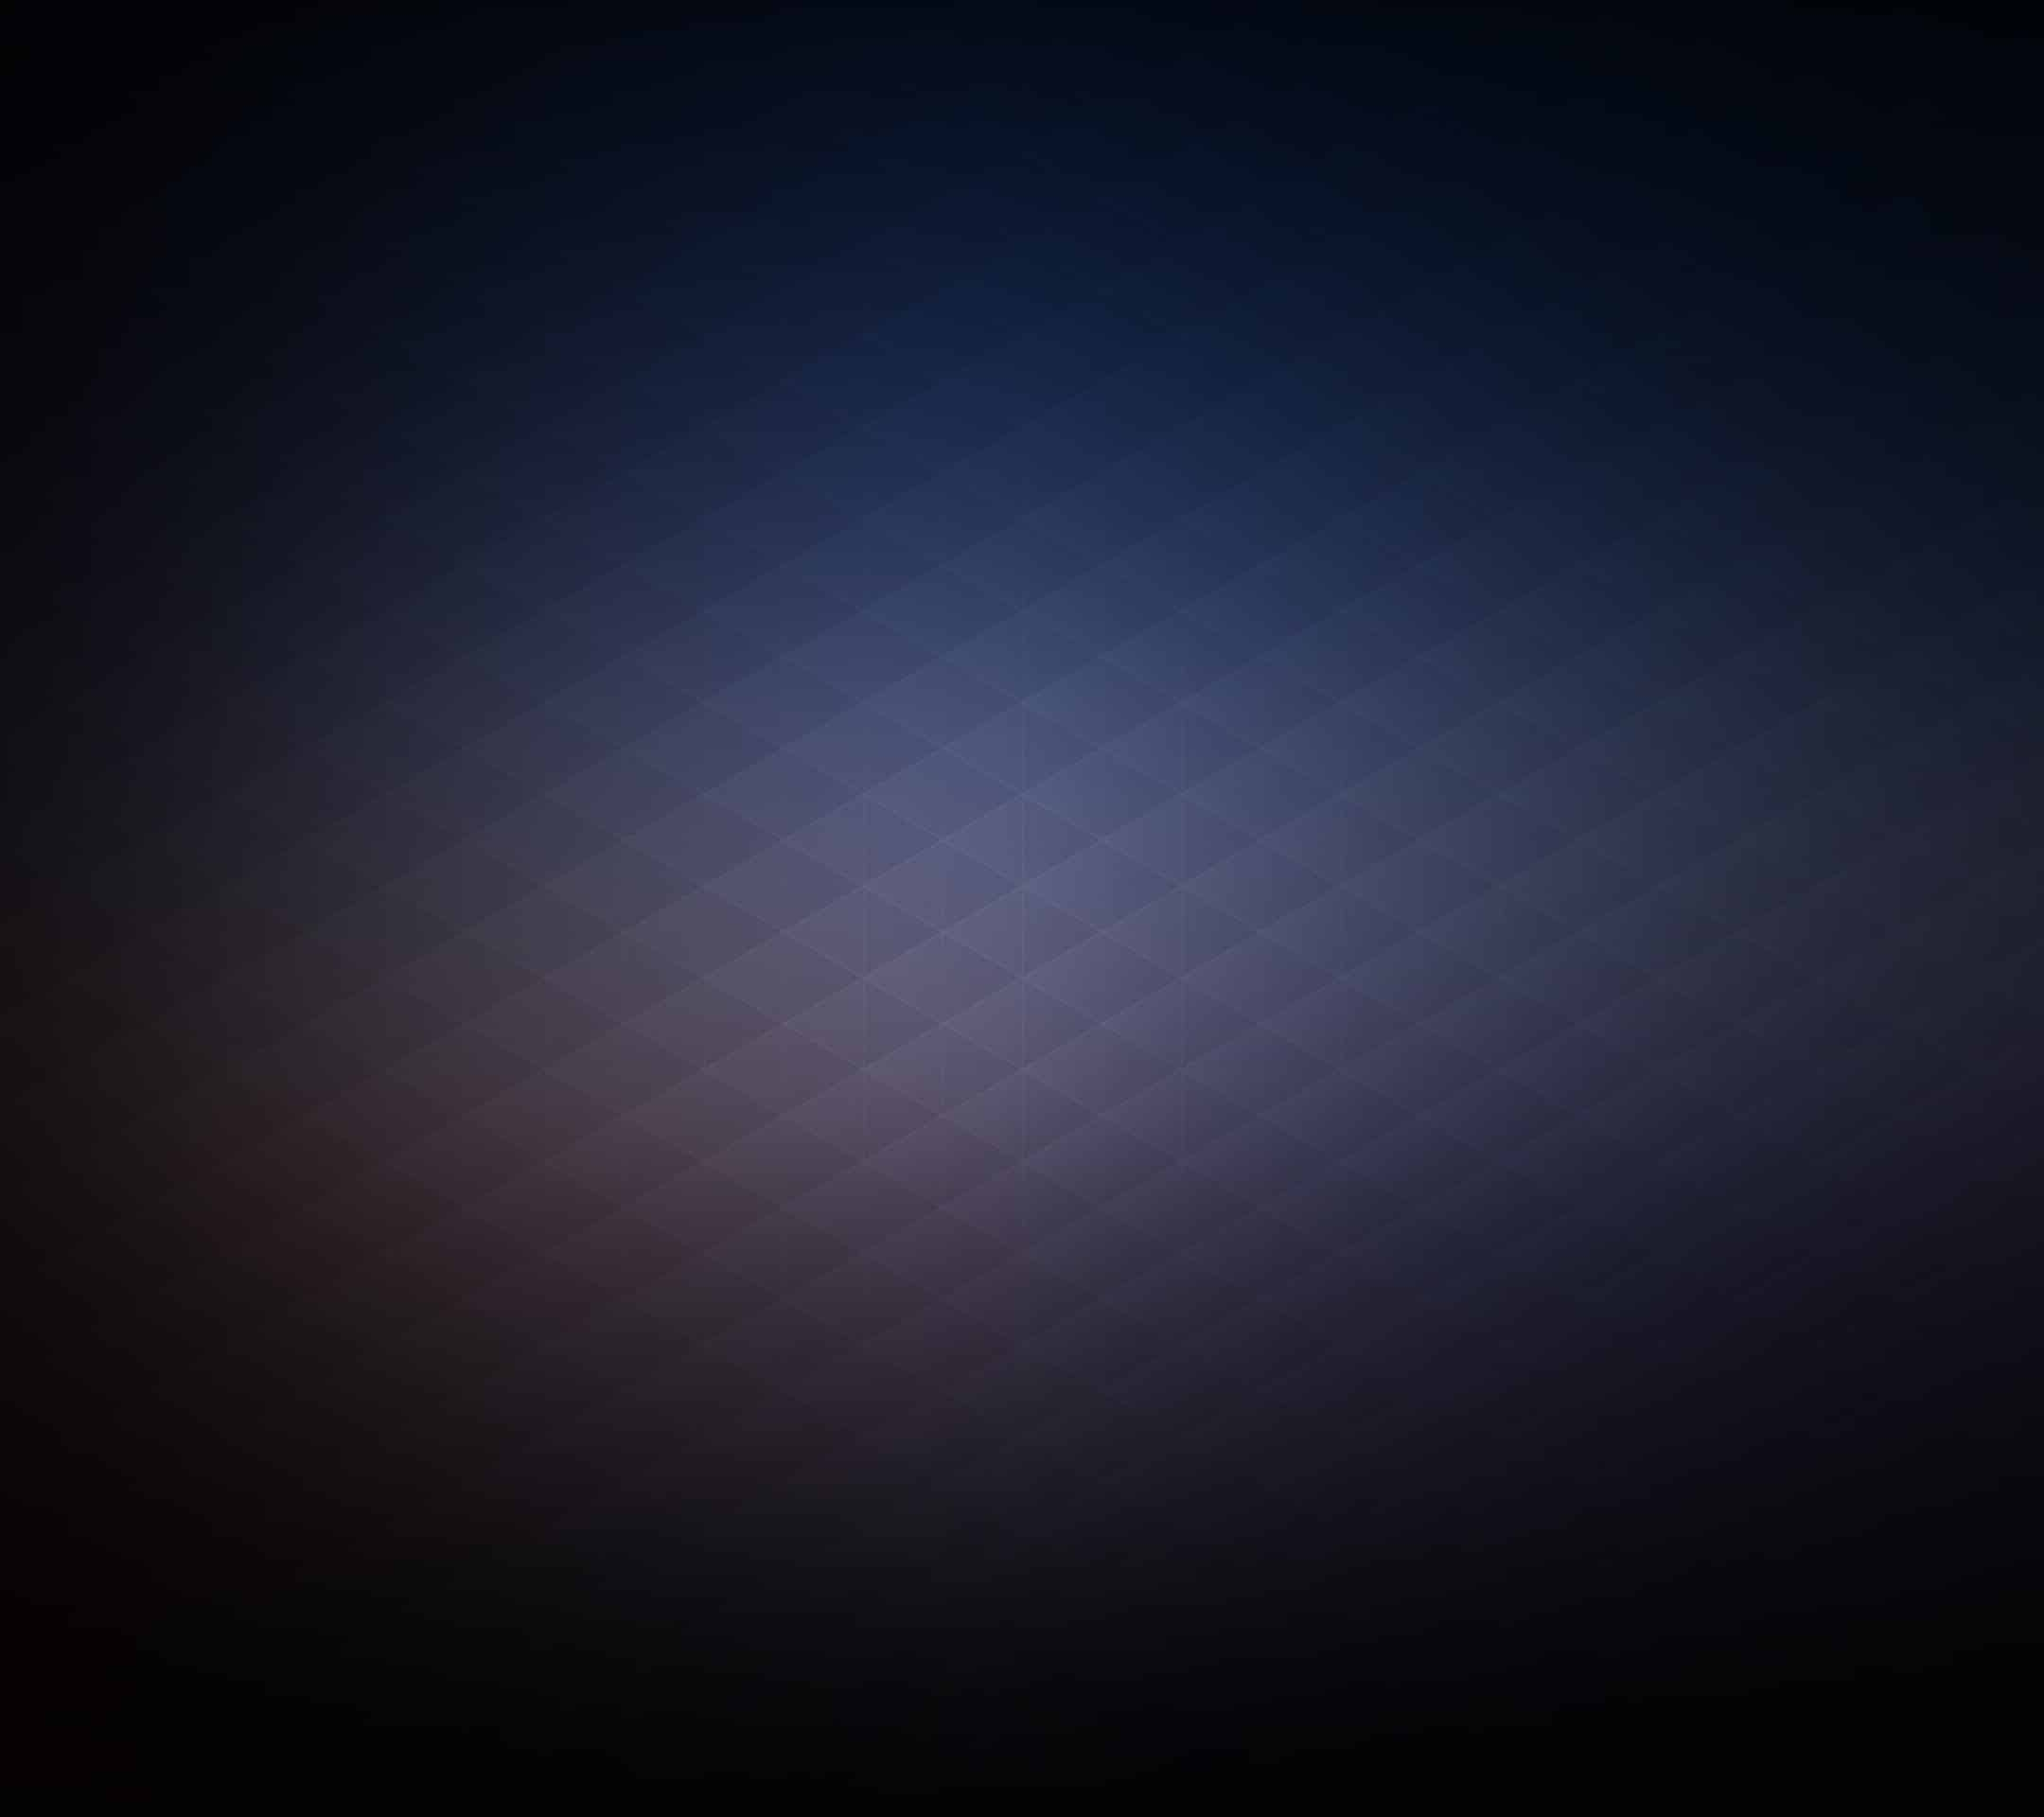 ... 300x267 - Download Huawei P8 Stock HD Wallpapers In High Resolution